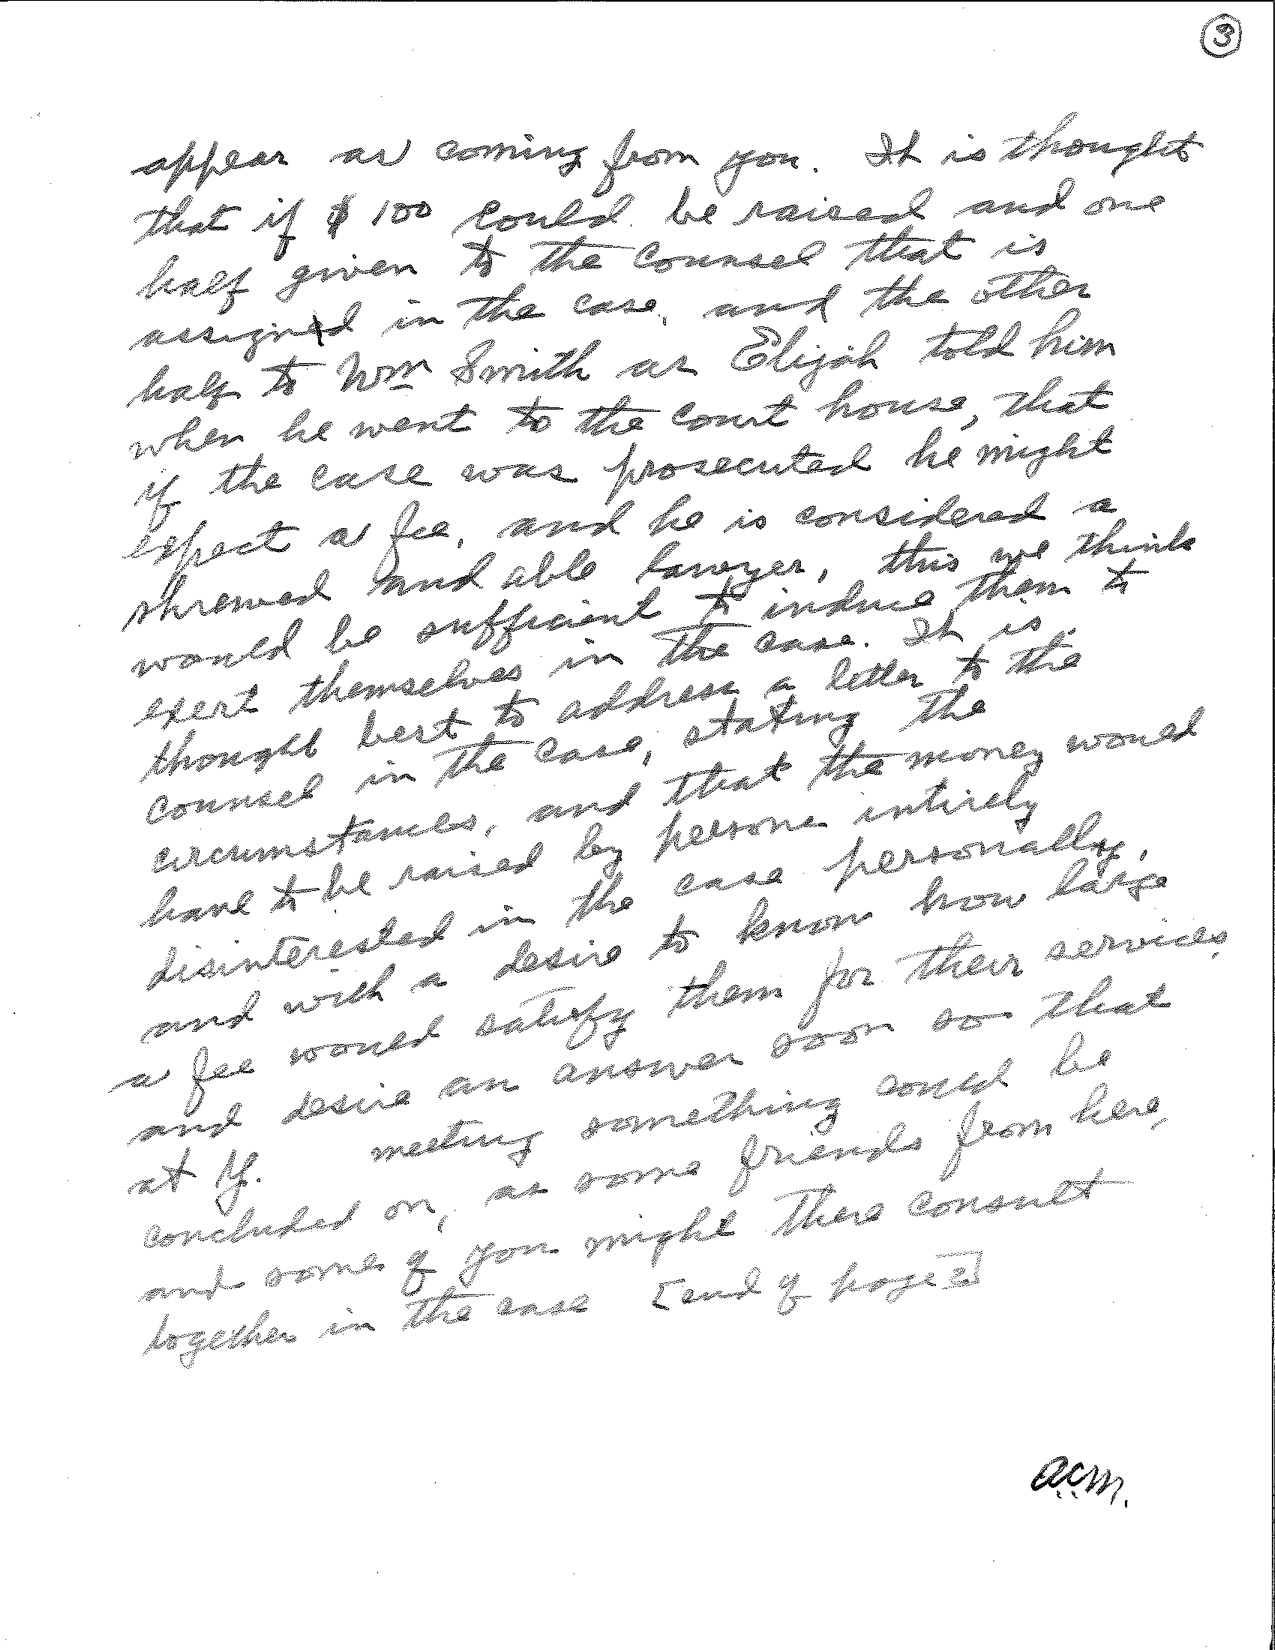 Yardley Taylor letter to Cyrus Greist page 3